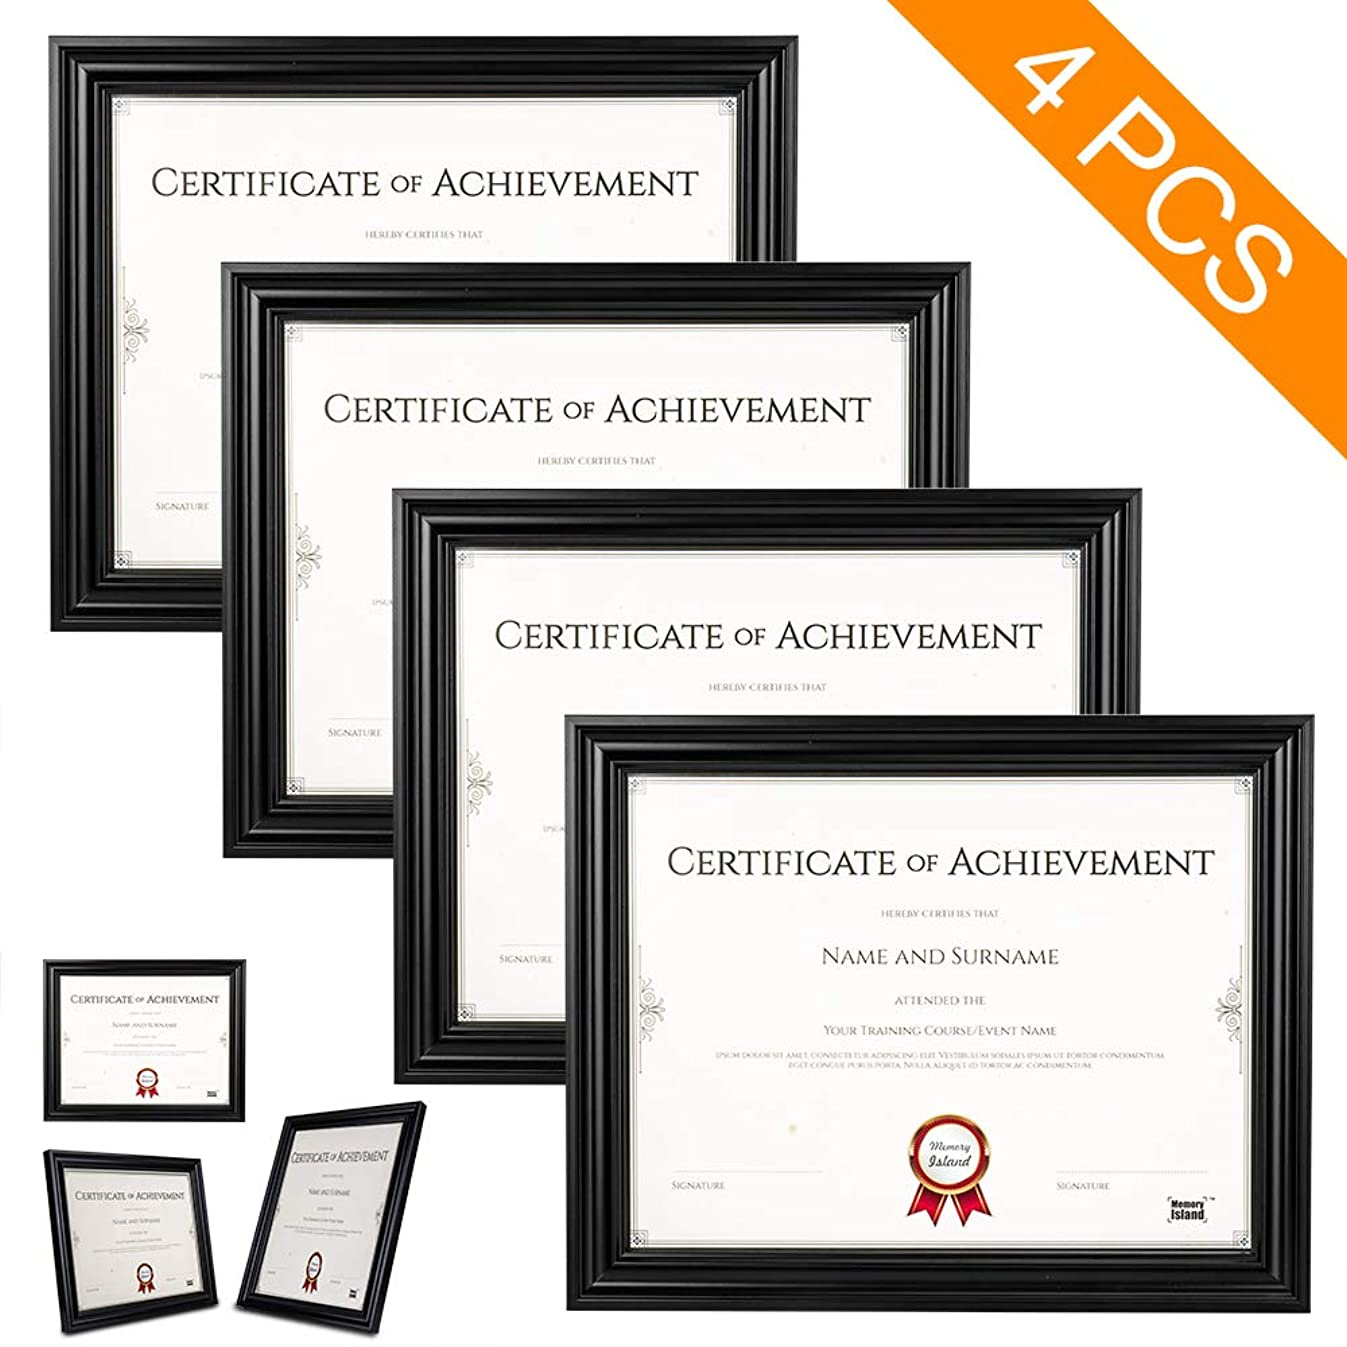 Memory Island Document Frames 8.5x11, Set of 4 Pack, Certificate Frames, Black, Glass Fronts. Vertical or Horizontal Display, Wall Decor Frame